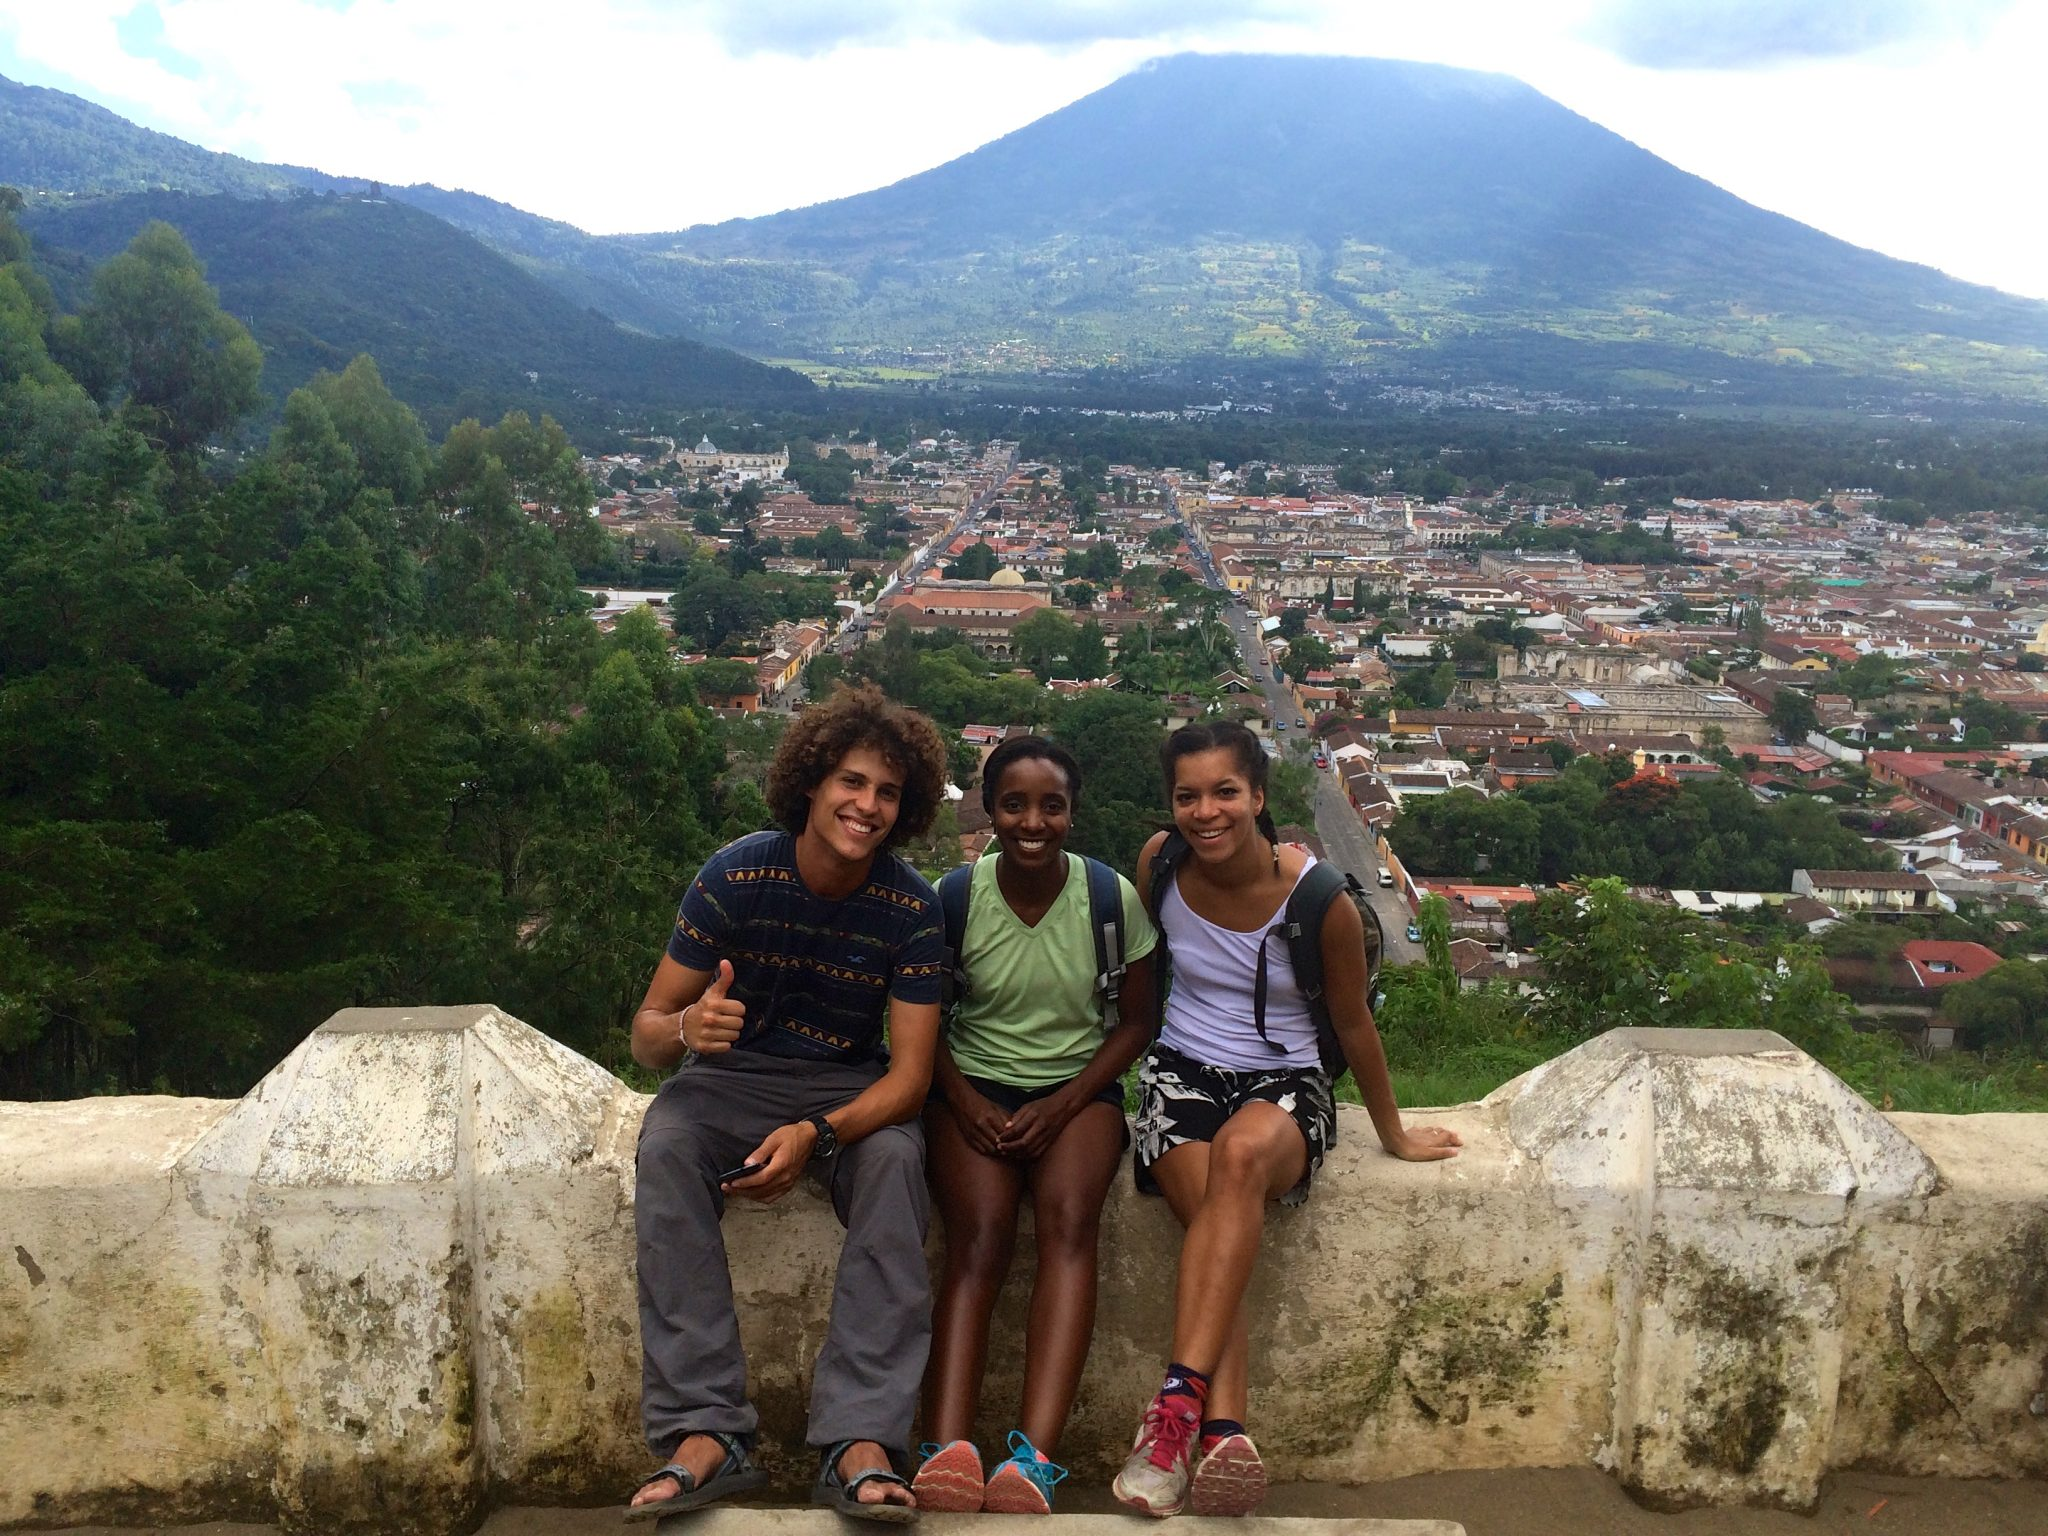 One of the activities was climbing to the top of Cerro de Cruz to get a full view of Antigua and the Volcano